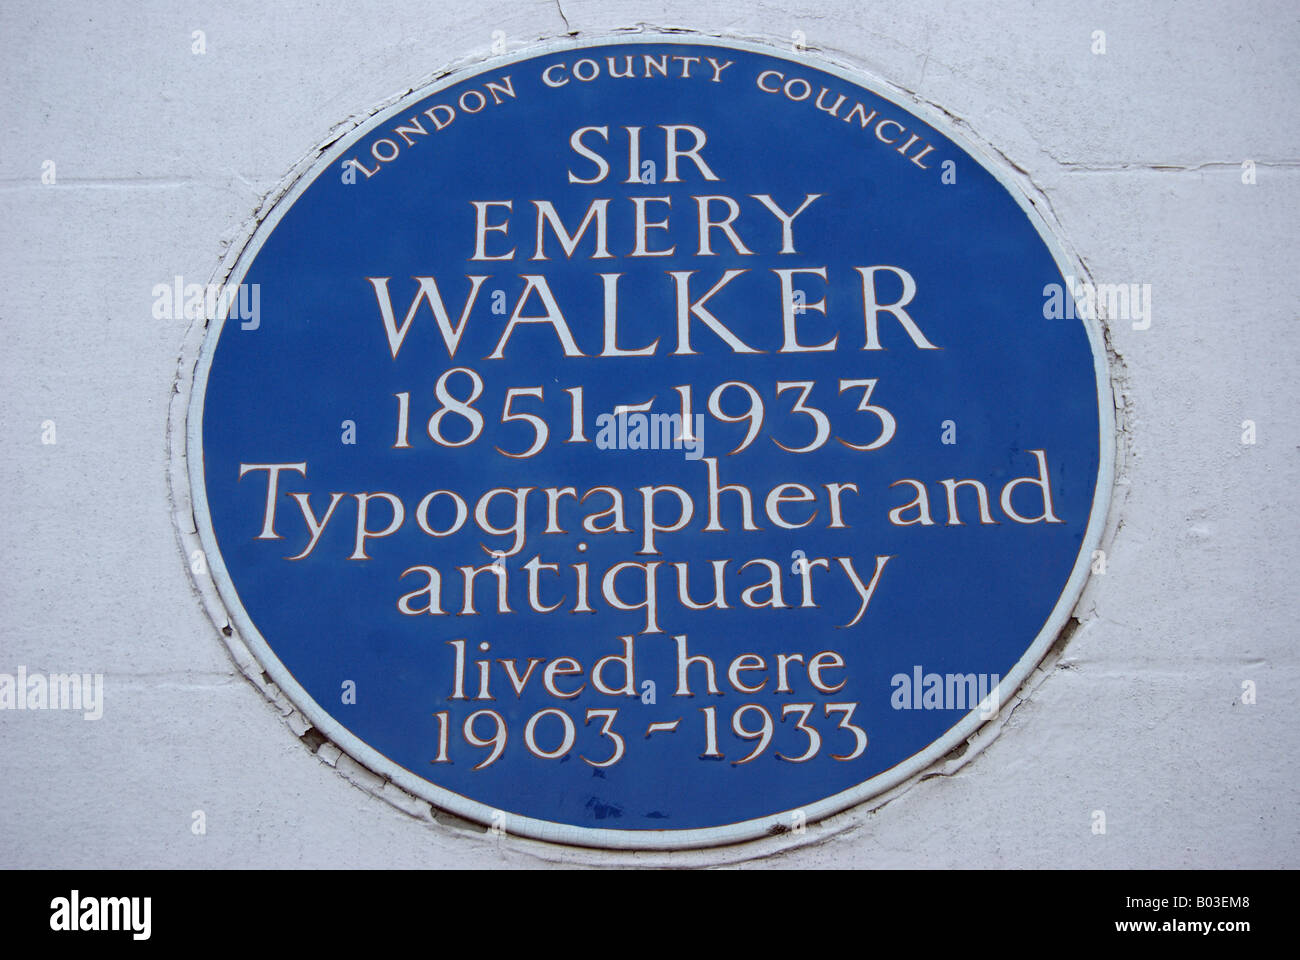 london county council blue plaque marking a former home of sir emery walker, in hammersmith terrace, west london, Stock Photo